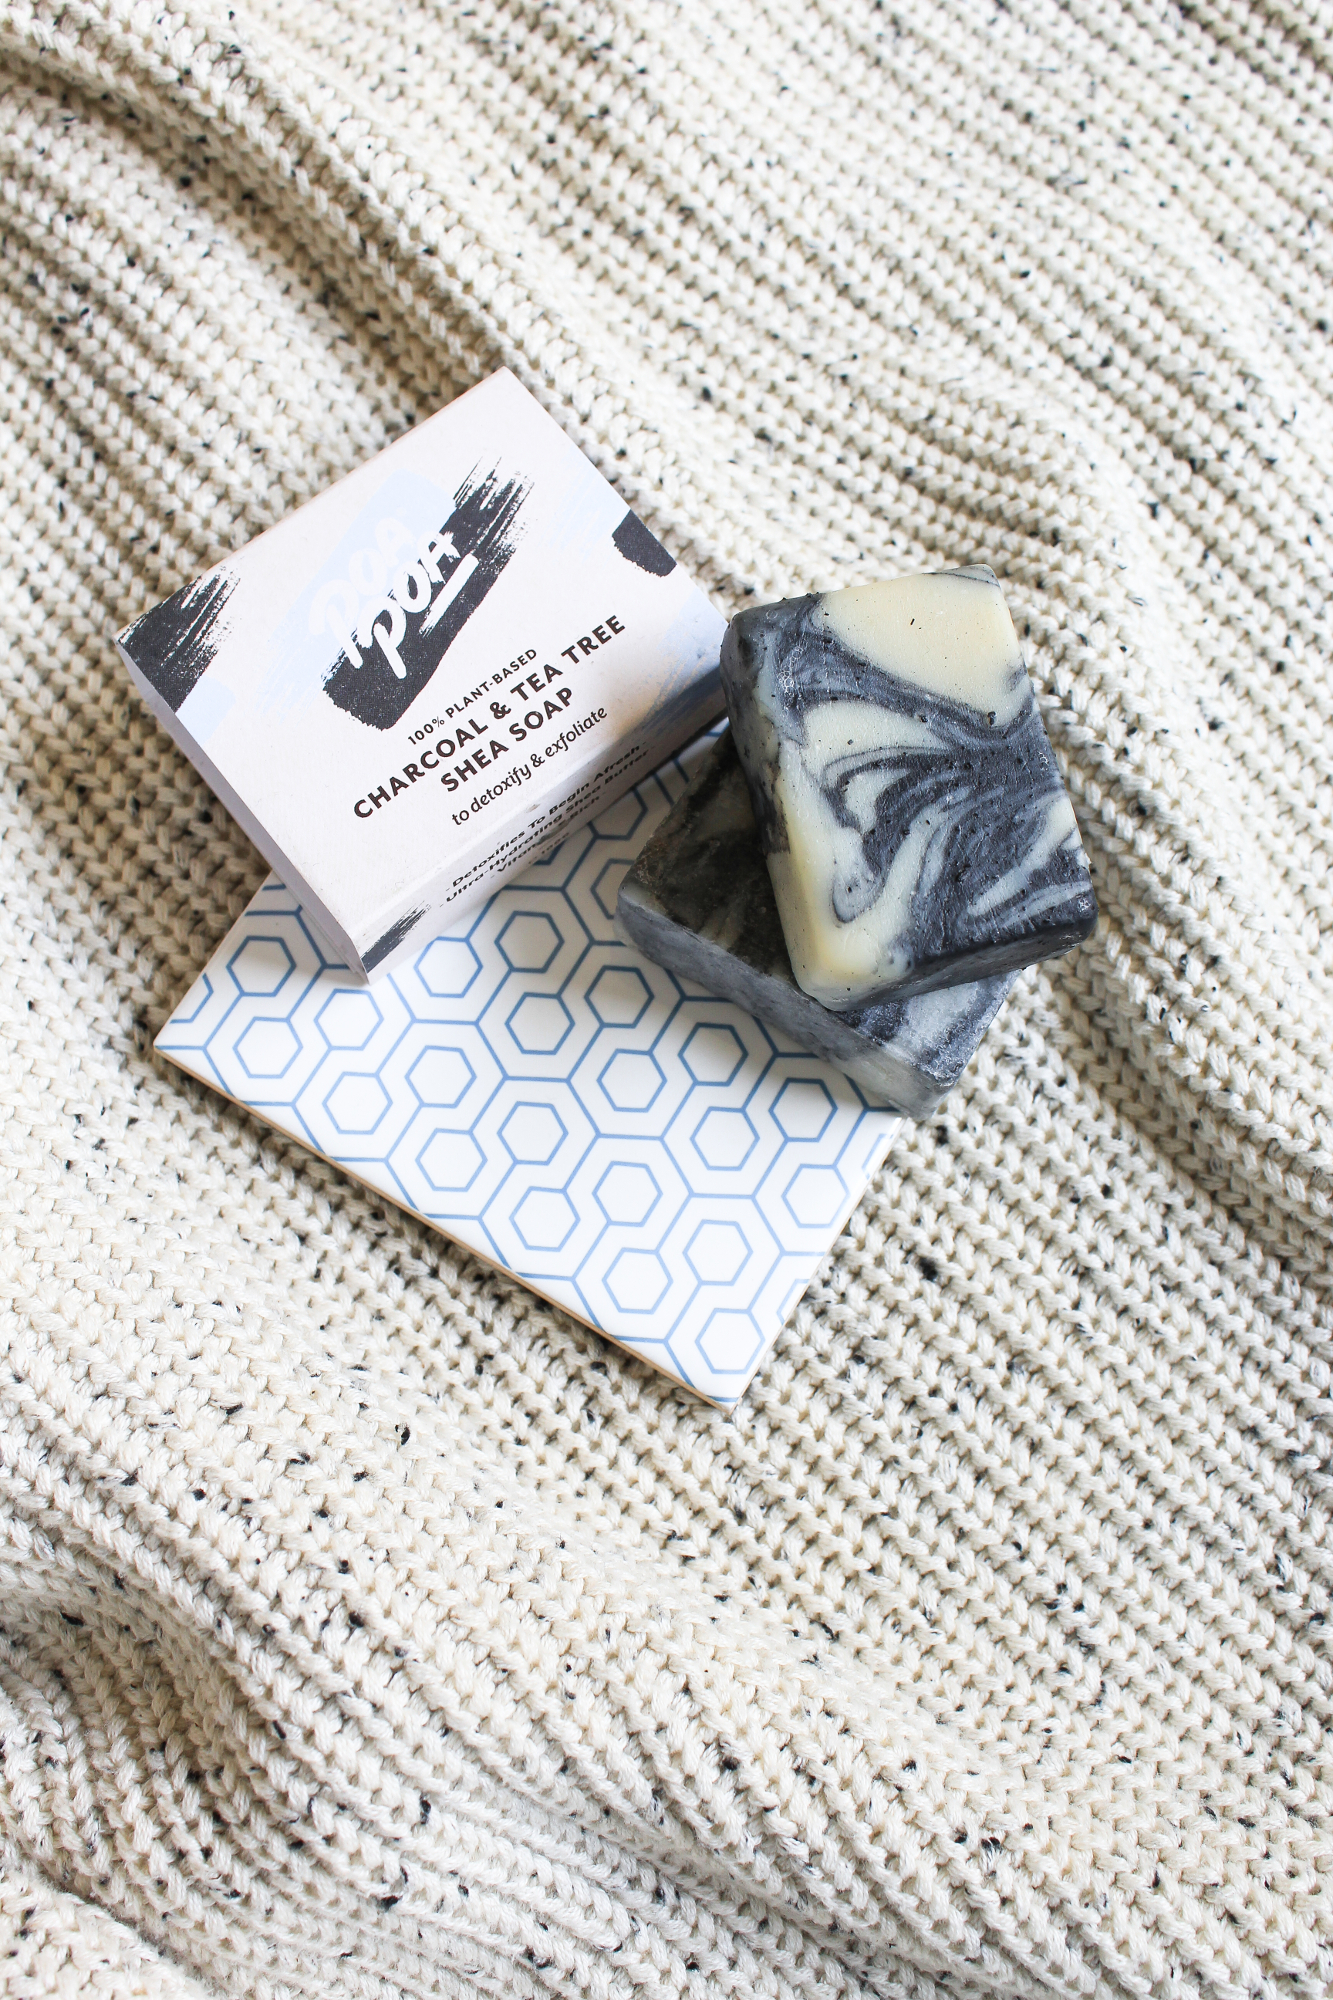 Poapoa Charcoal and Tea Tree Shea Soap. Lovelula